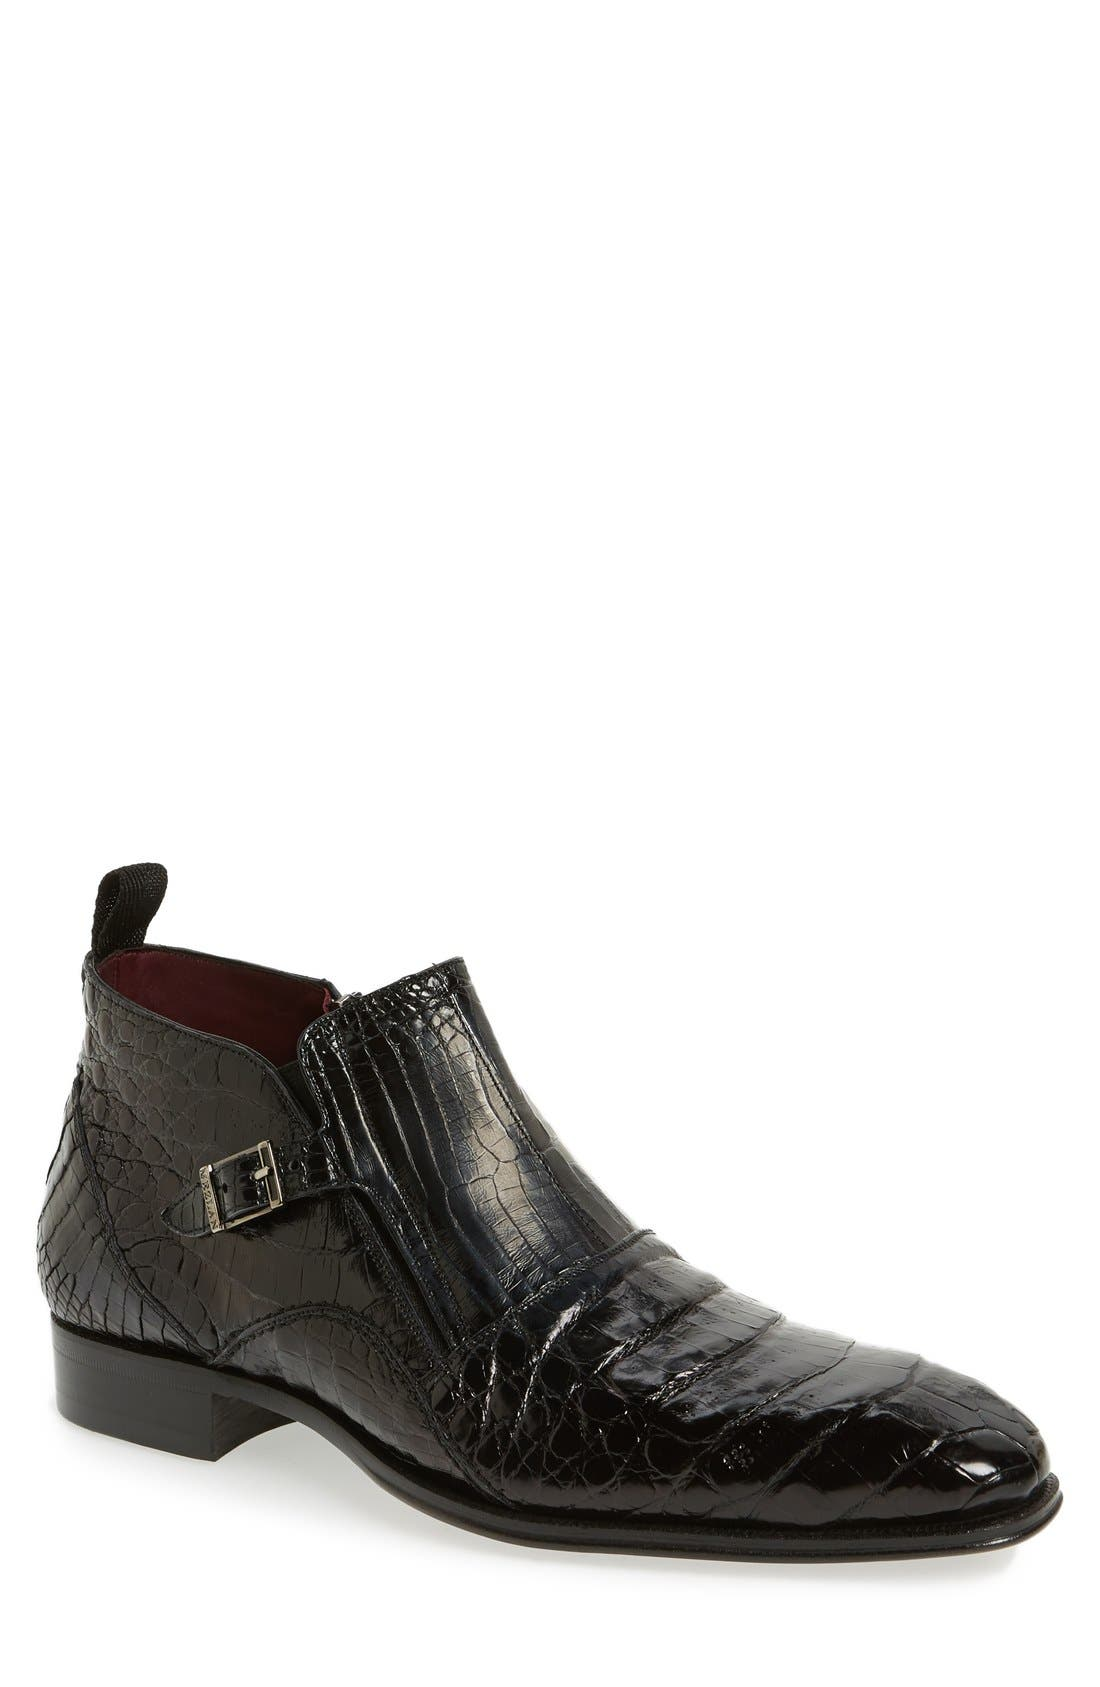 Alternate Image 1 Selected - Mezlan 'Bene' Chelsea Boot (Men)